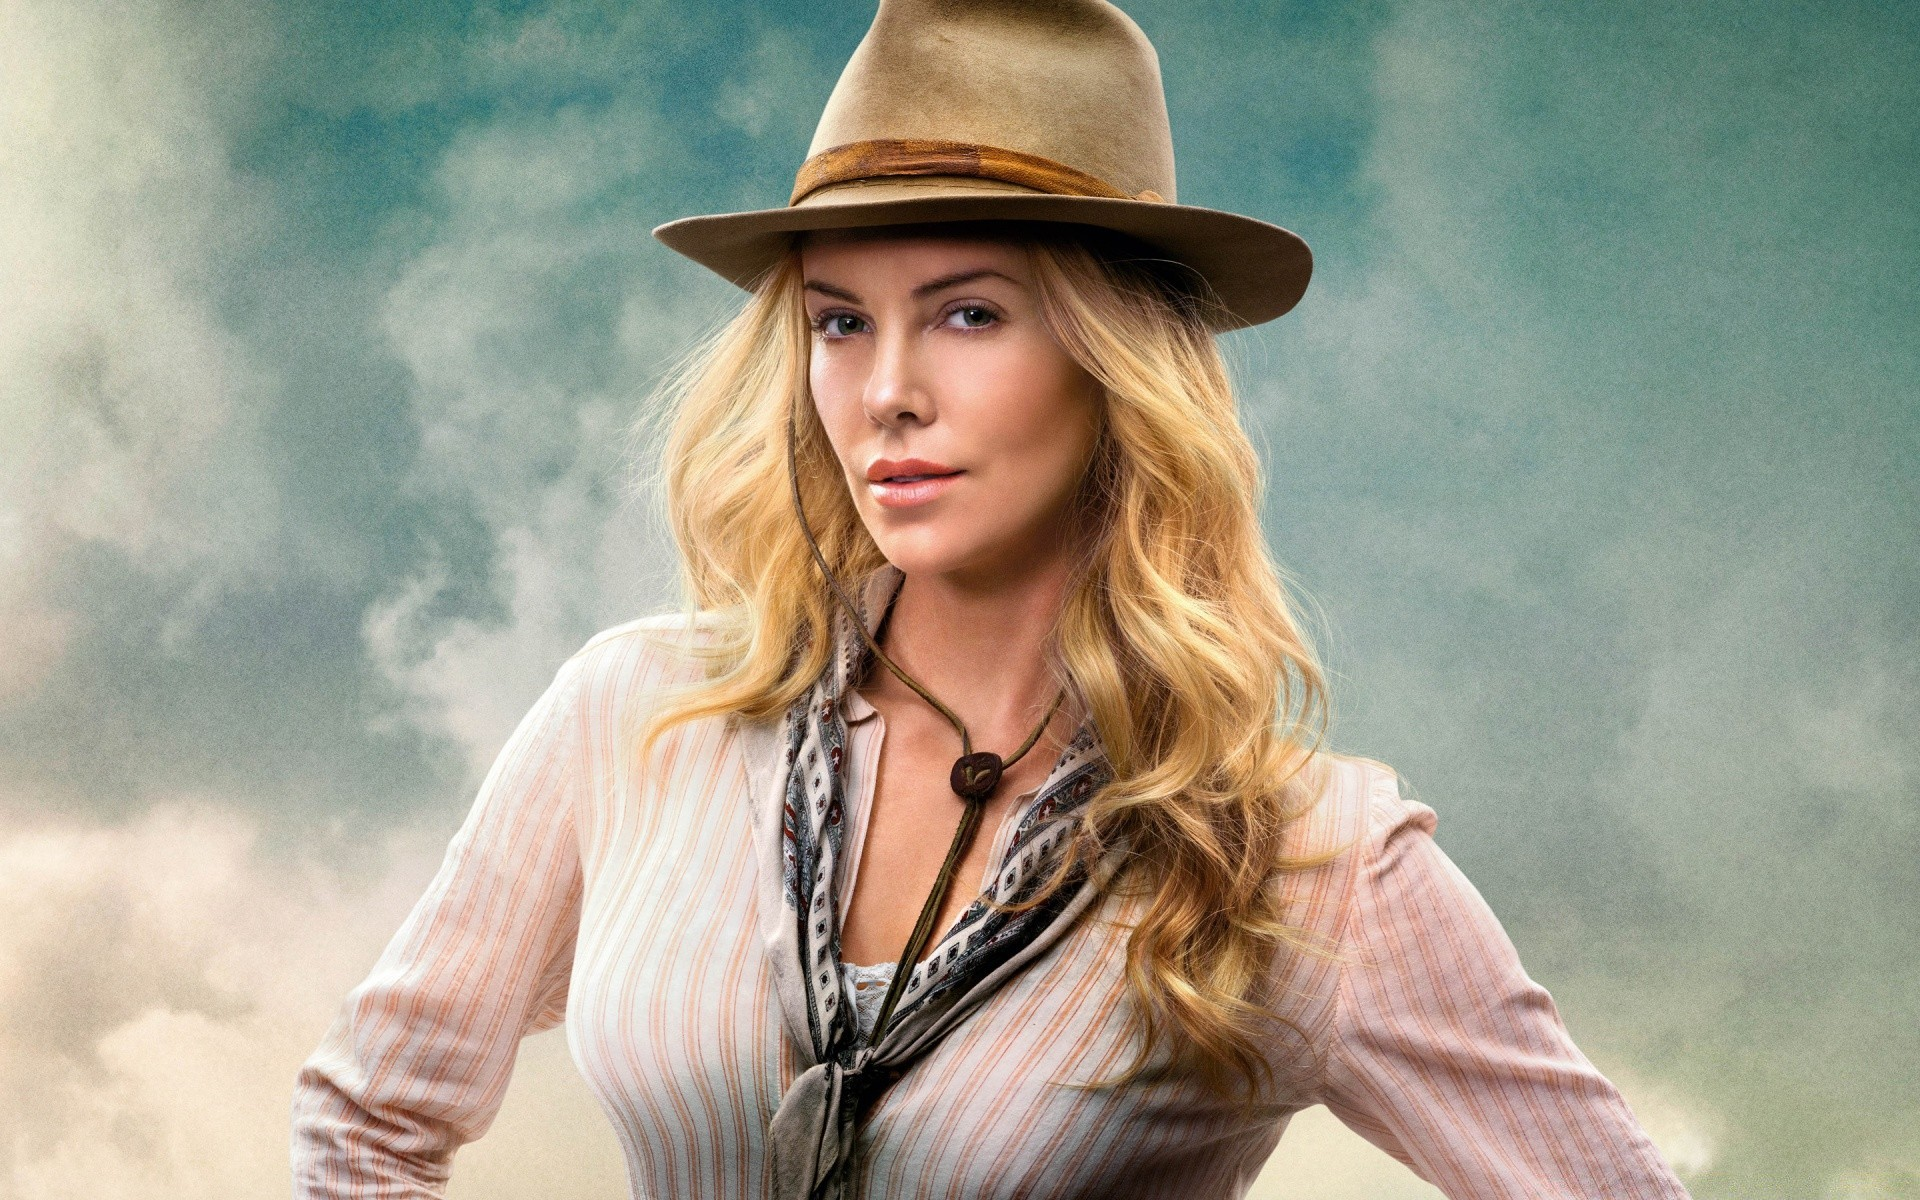 A Million Ways To Die In The West Charlize Theron IPhone Wallpapers For Free